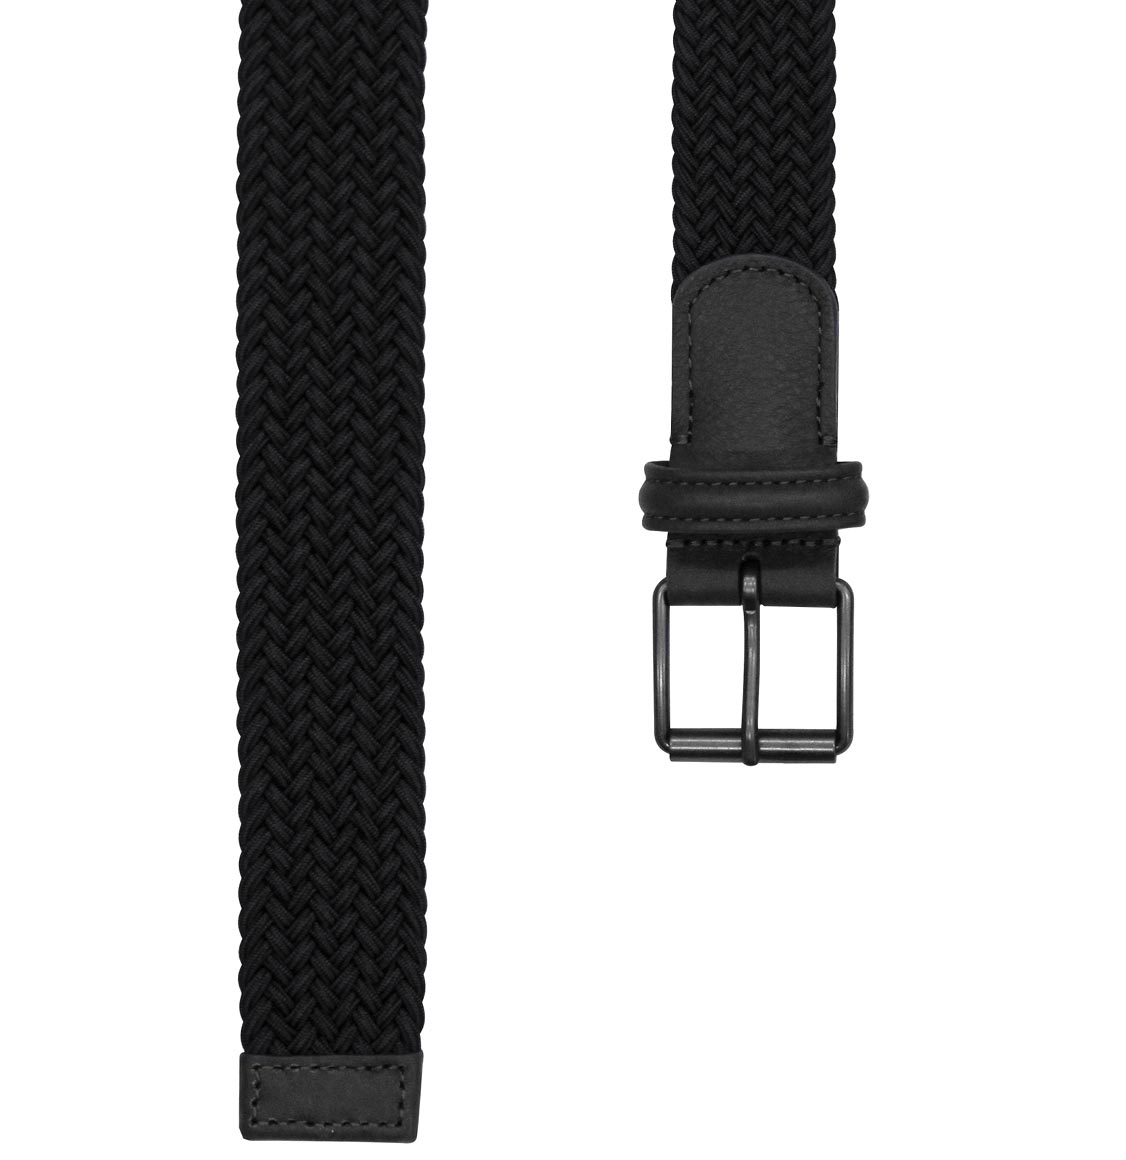 Anderson's Leather-Trimmed Woven Belt Navy Blue